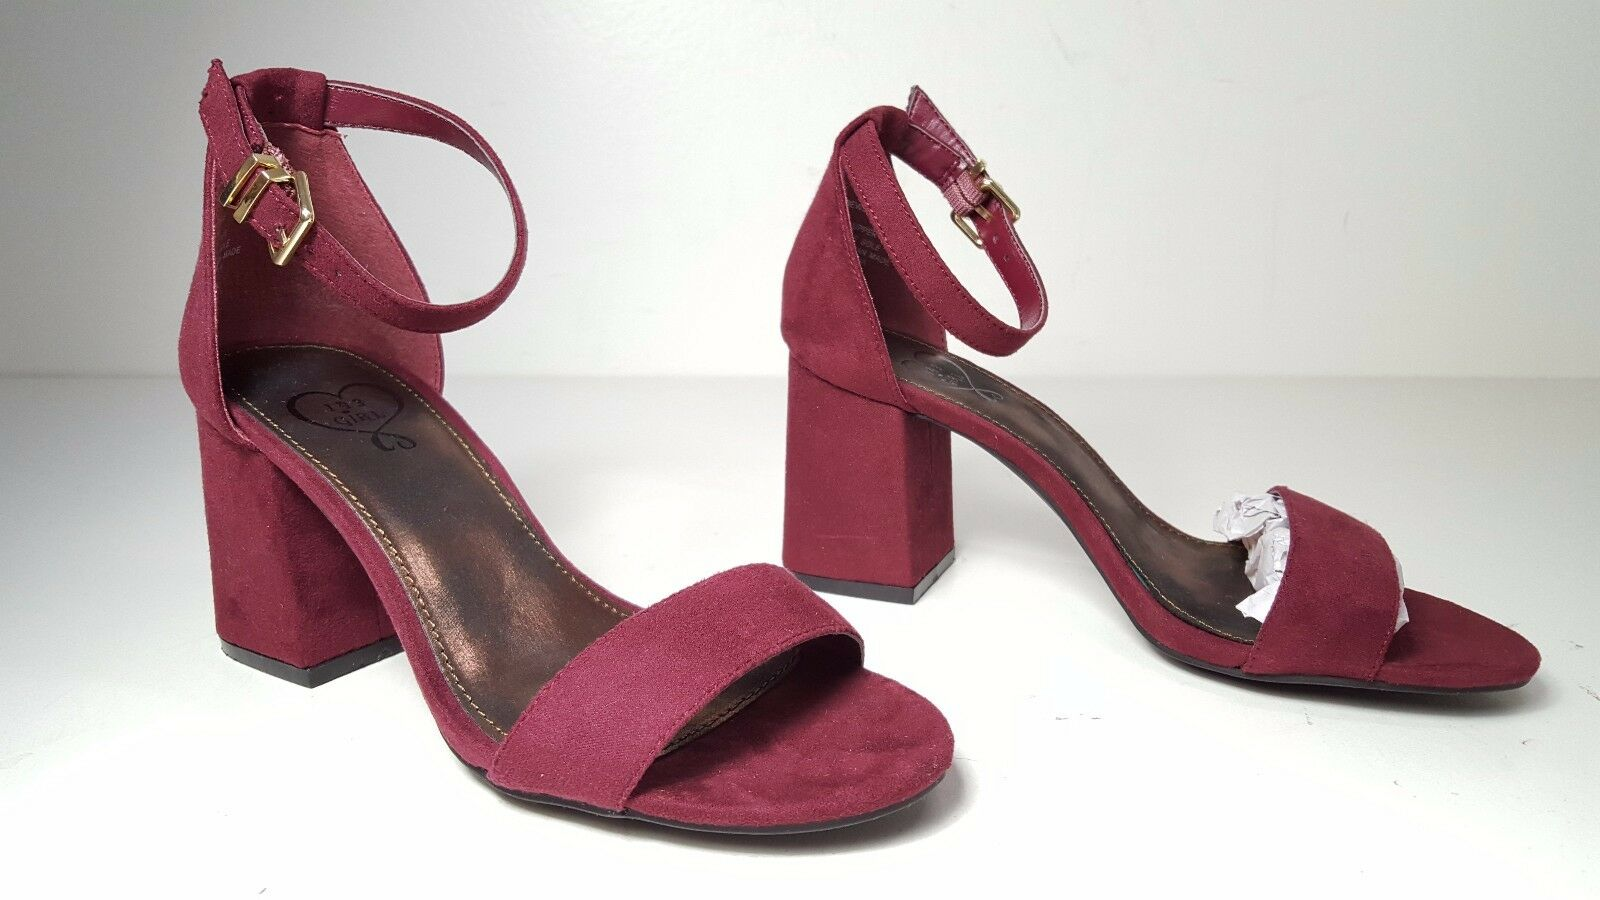 143 Sandals girl Newsie Wine Heels Ankle Strap Open Toe Sandals 143 Womens Shoes Size 5 ce7015